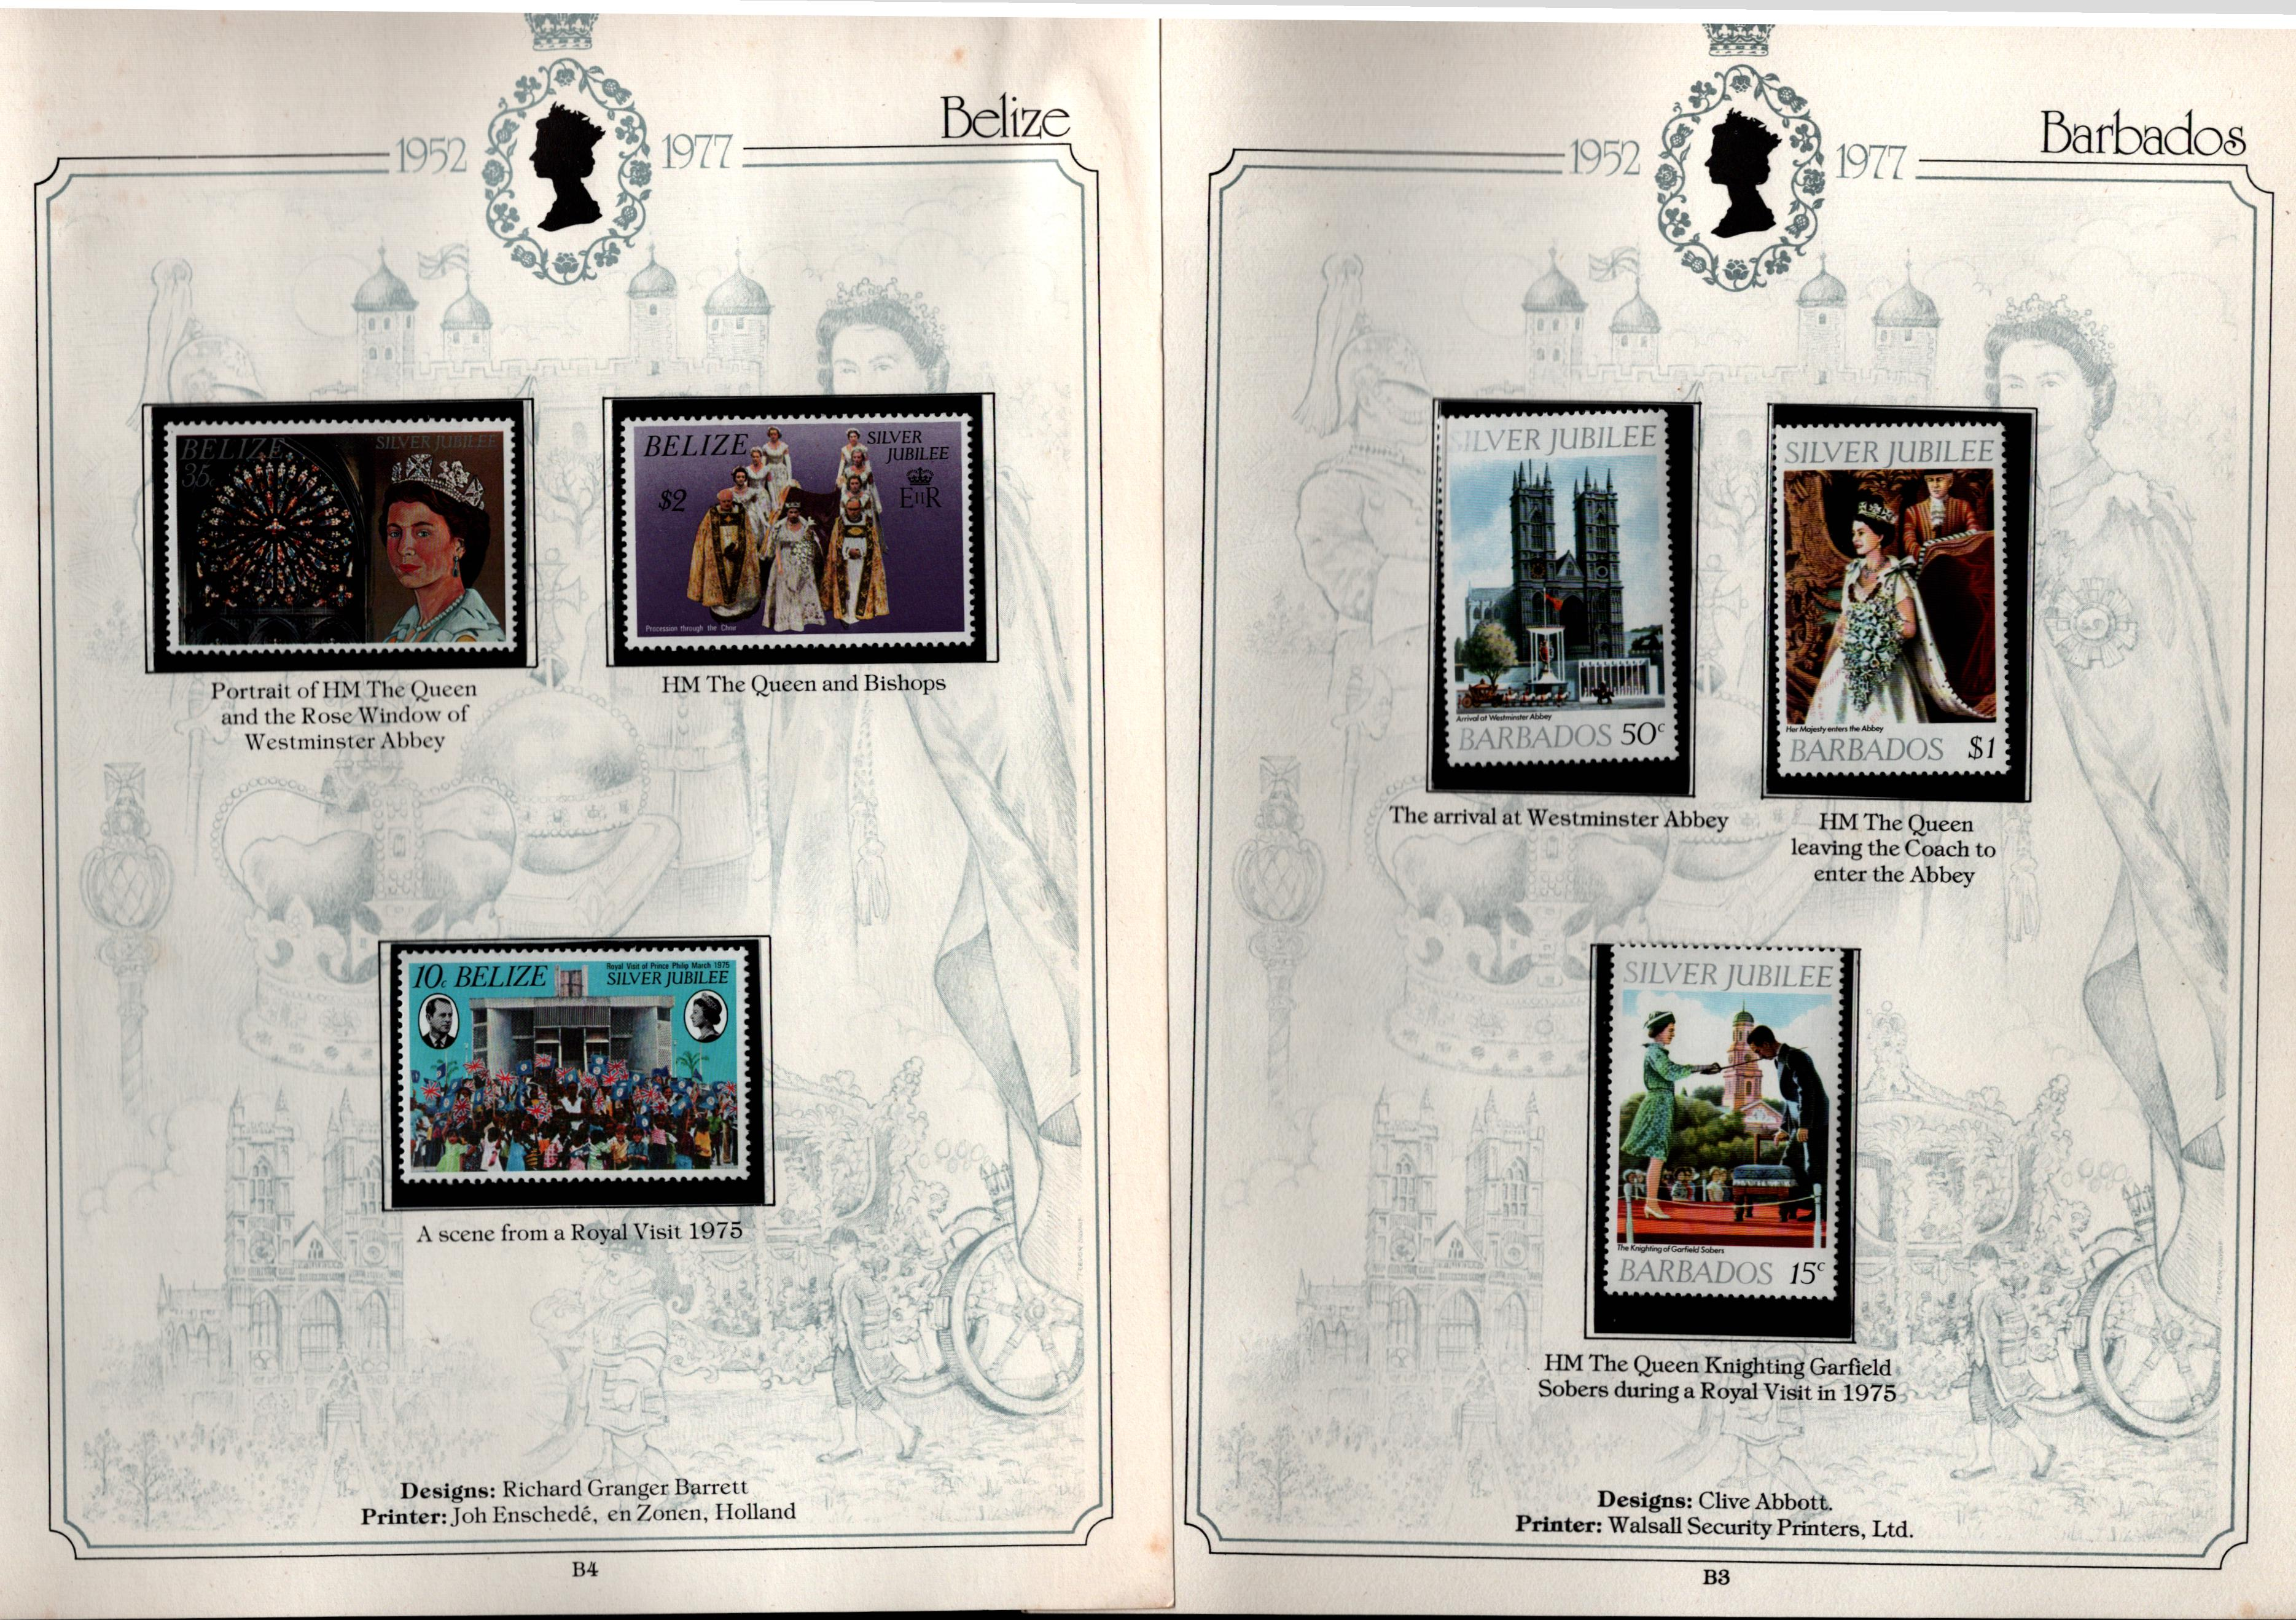 Omnibus issues 7/2/1977 silver jubilee stamp collection in special album. 75 stamps and 1